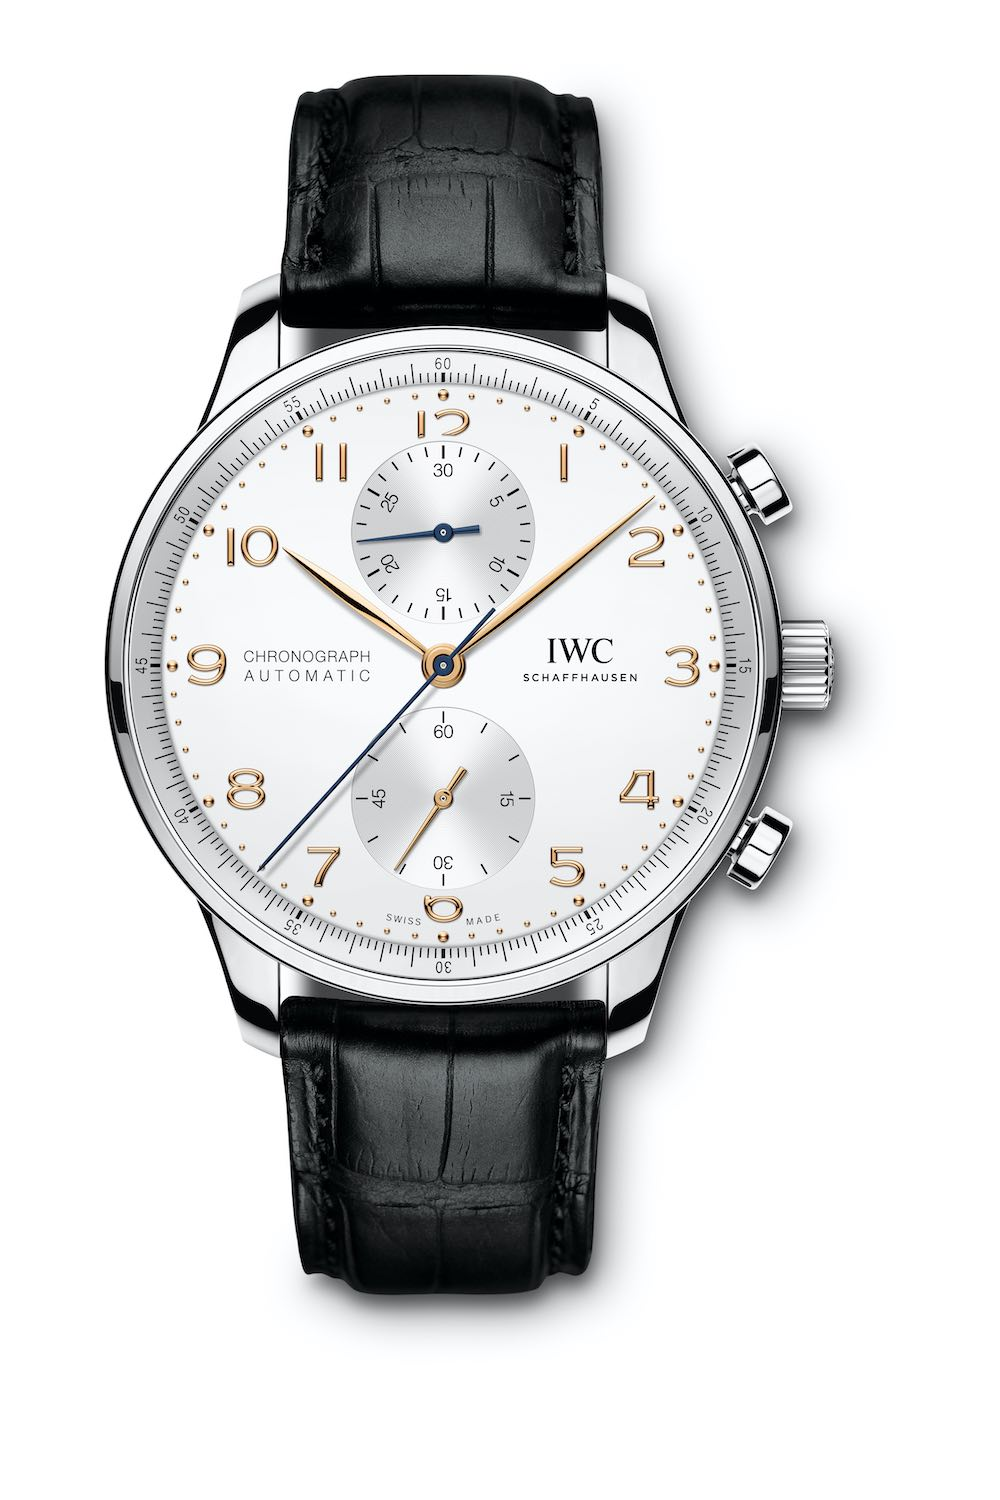 IWC Portugieser Chronograph iw3716 in-house calibre 69335 - iw371604